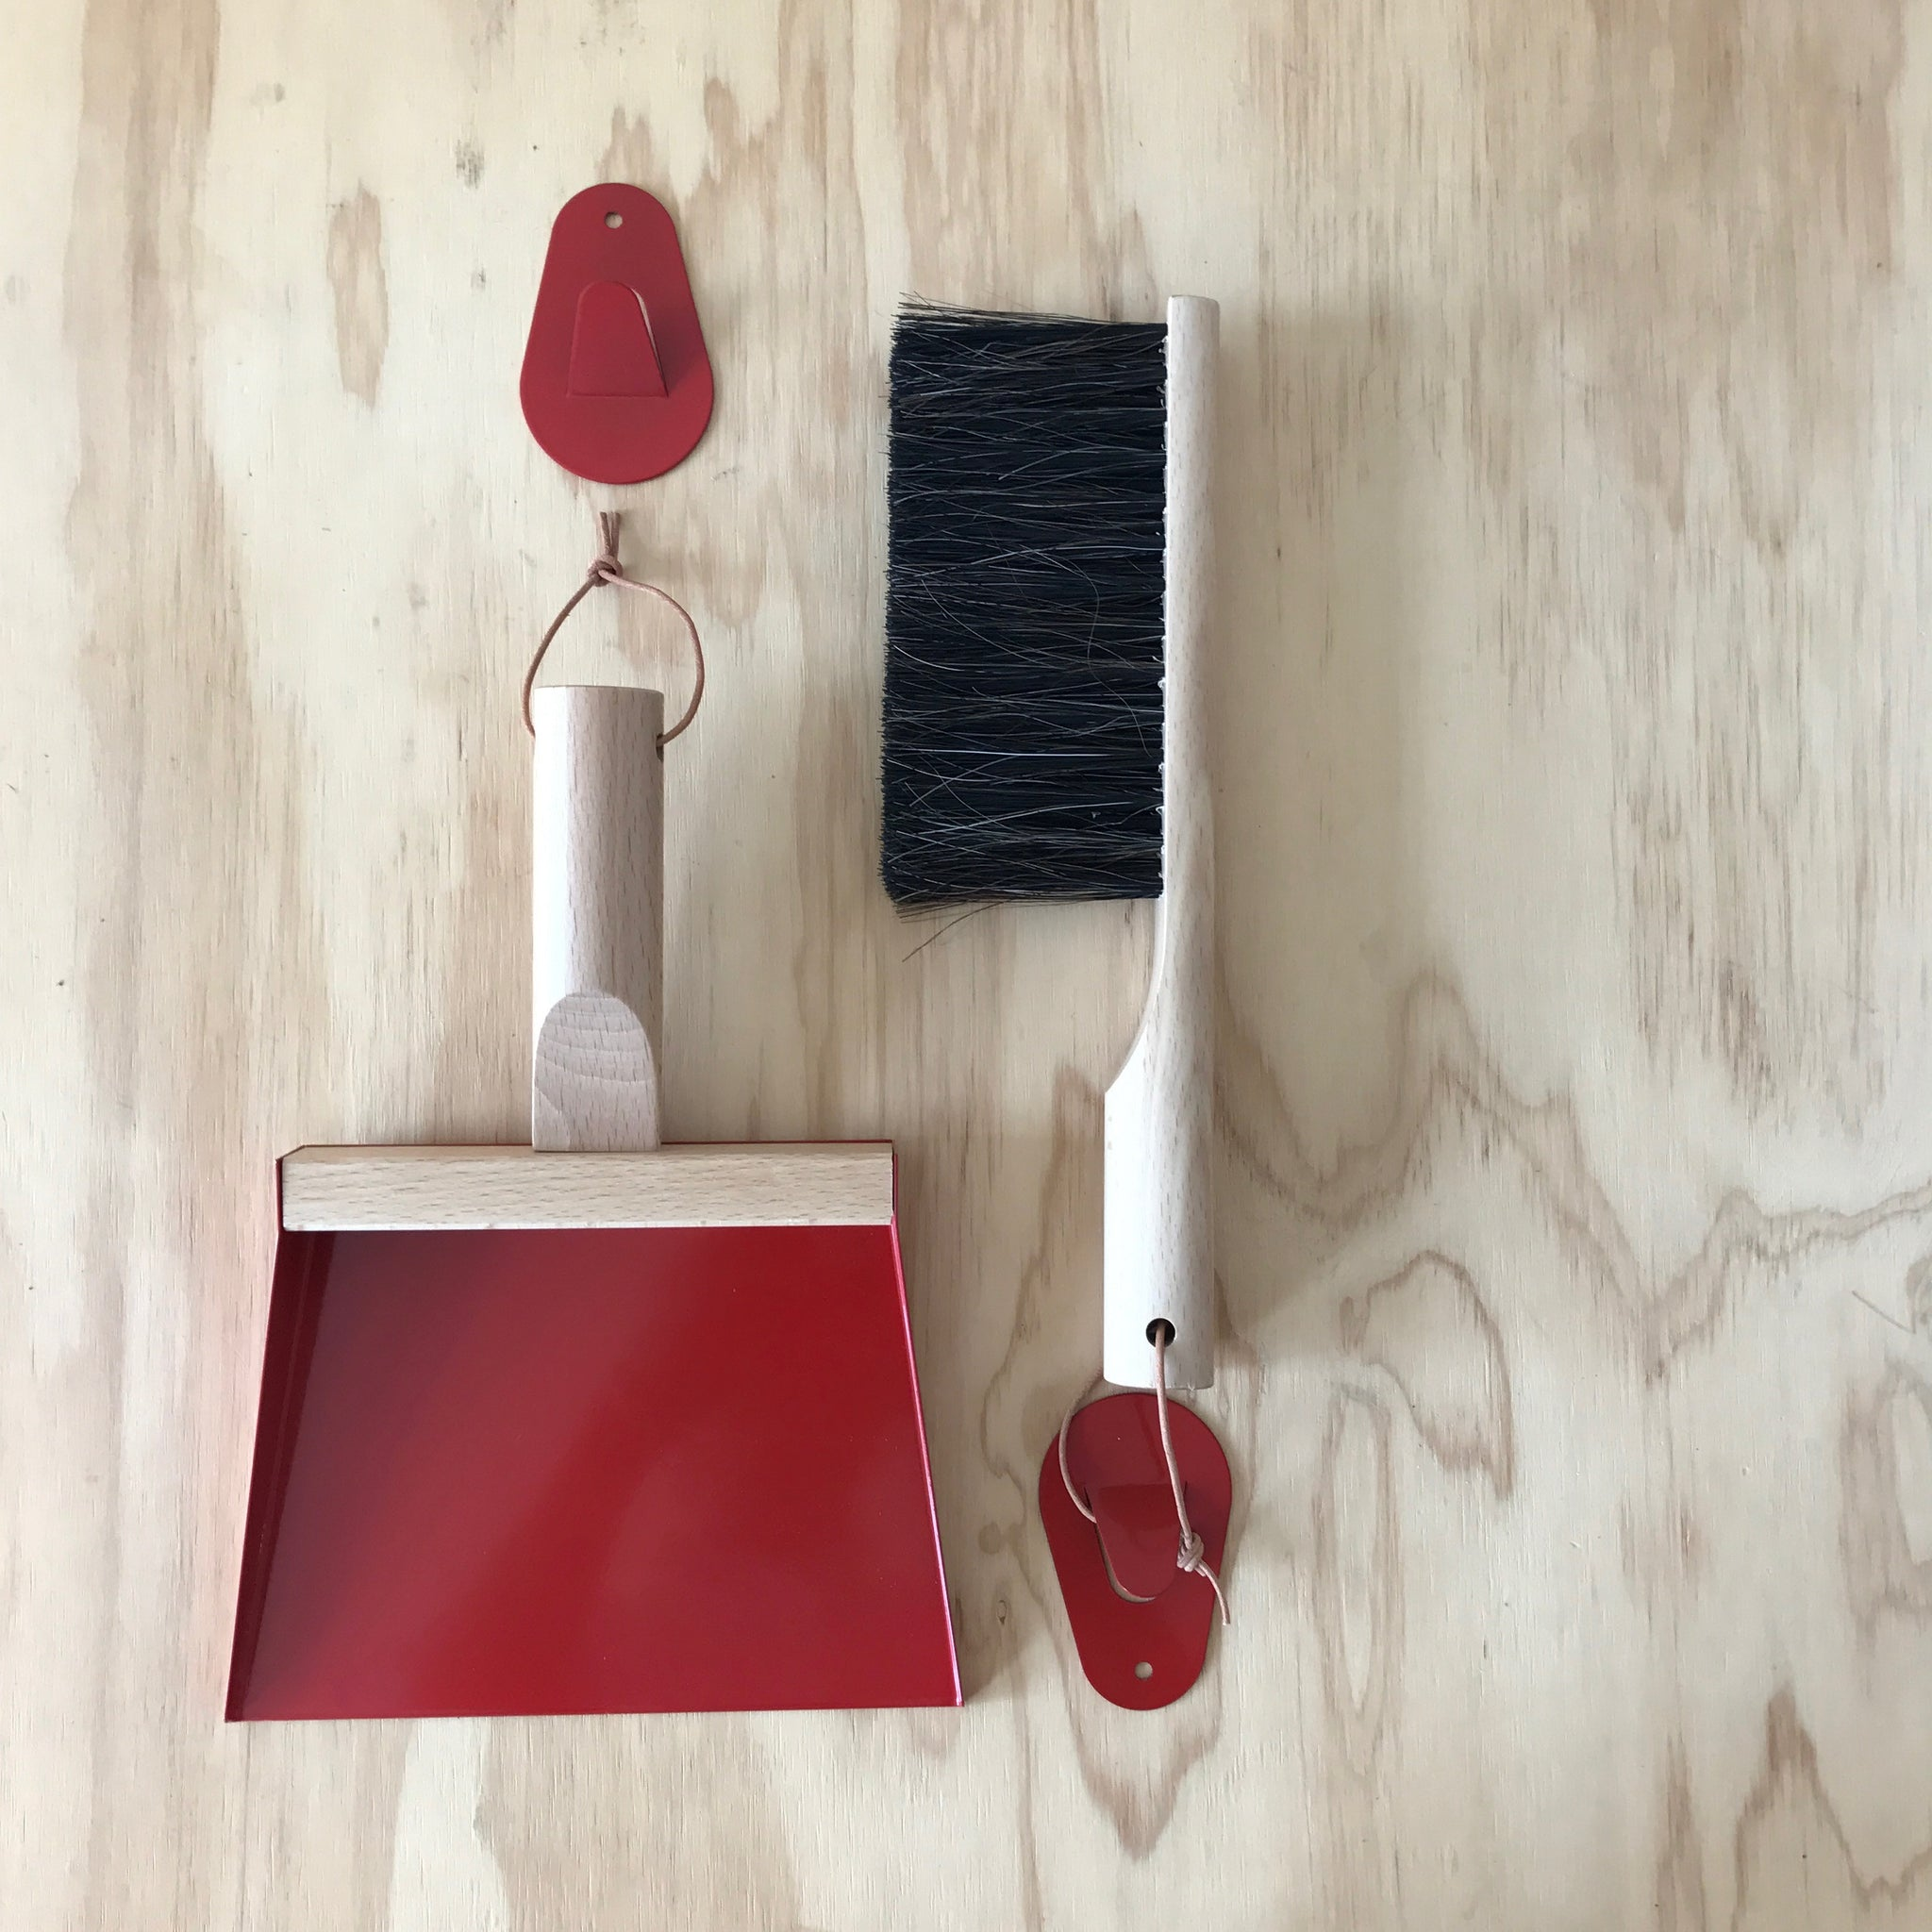 Andree Jardin 'Mr. and Mrs Clynk' Red Hand Brush, Dustpan & Wall Hooks - Upstate MN